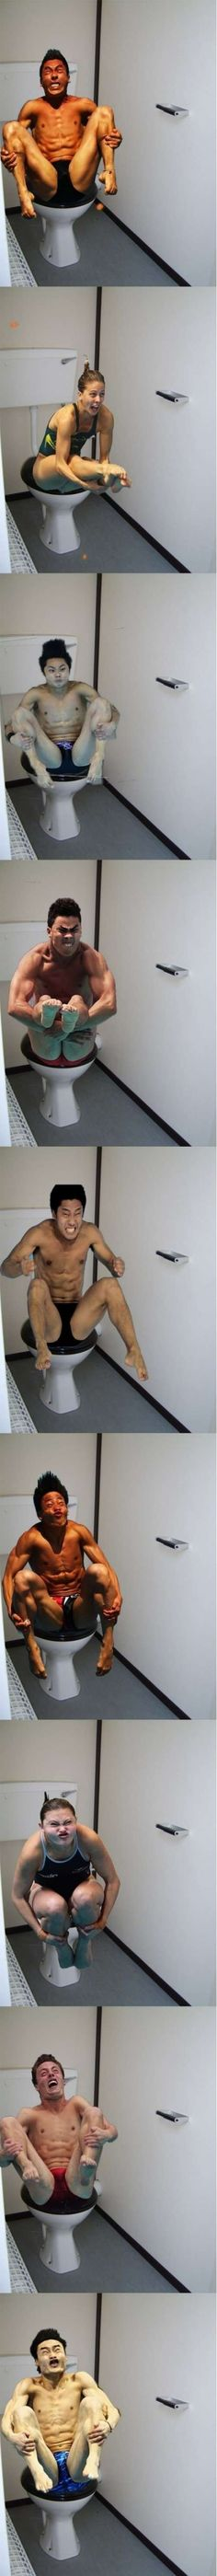 I laughed a lot harder than I should have...Olympic divers on toilets